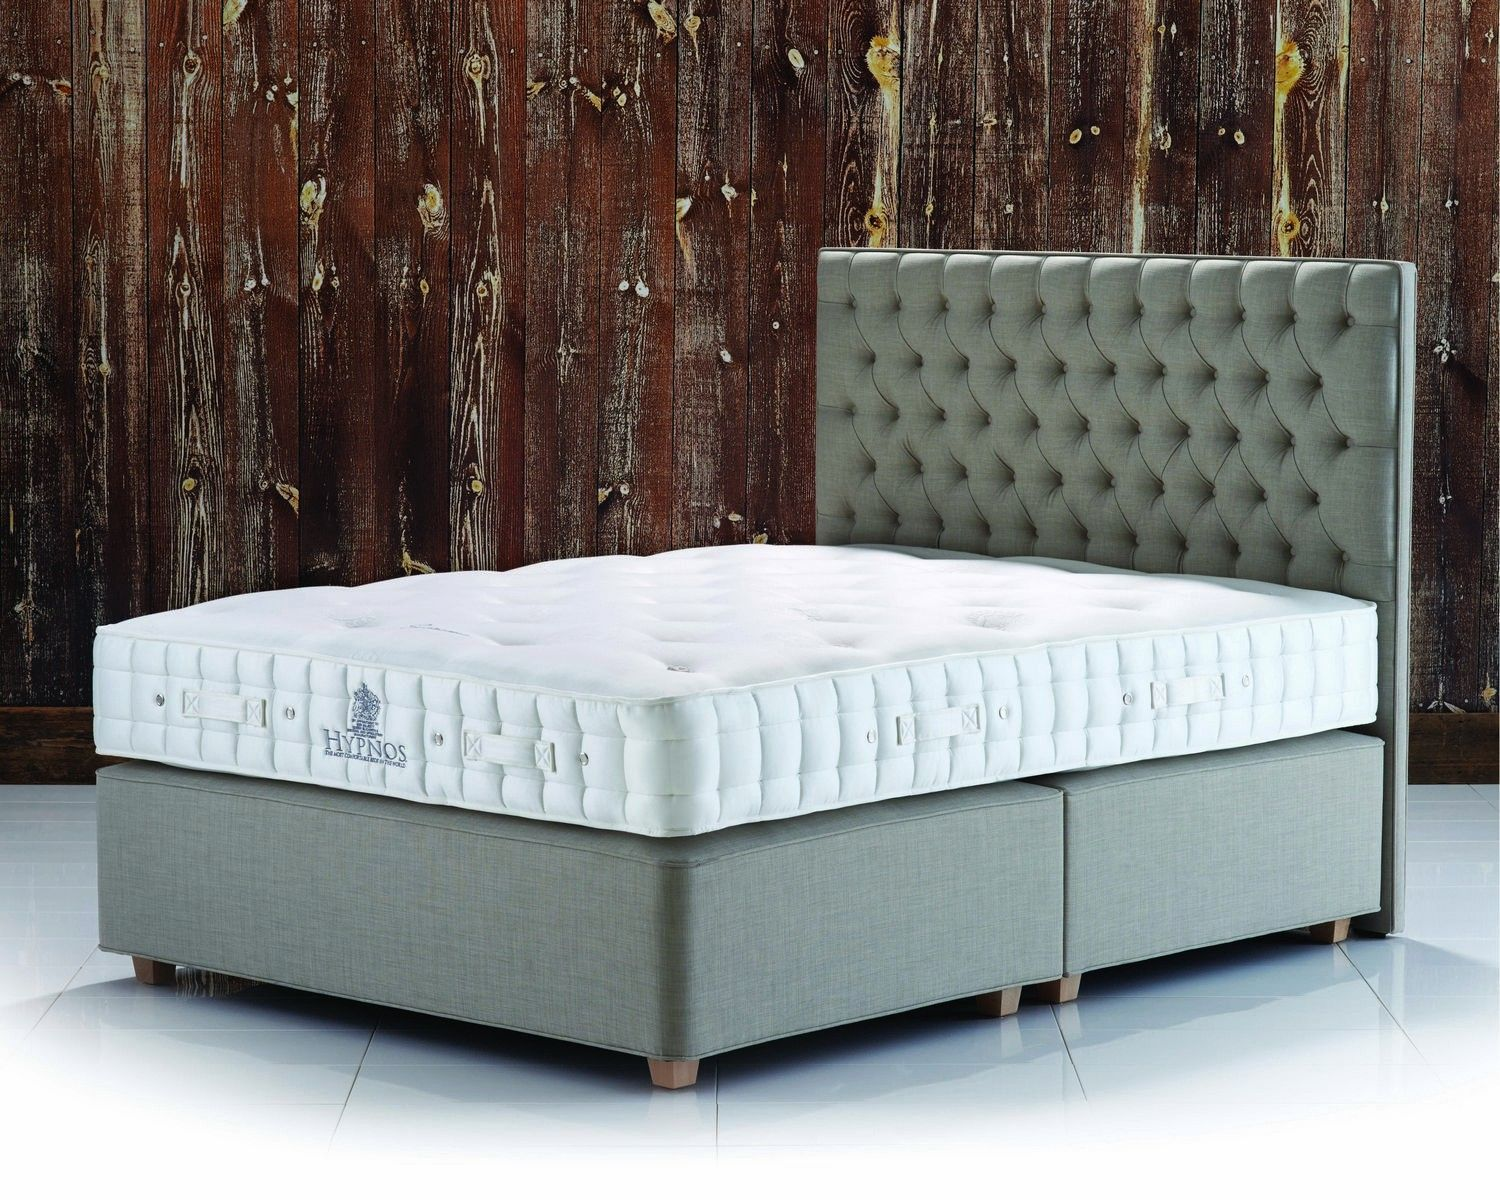 Sealy Posturepedic Backcare Elite Mattress Hypnos Luxury No Turn Supreme Super King Size Zip Link Mattress